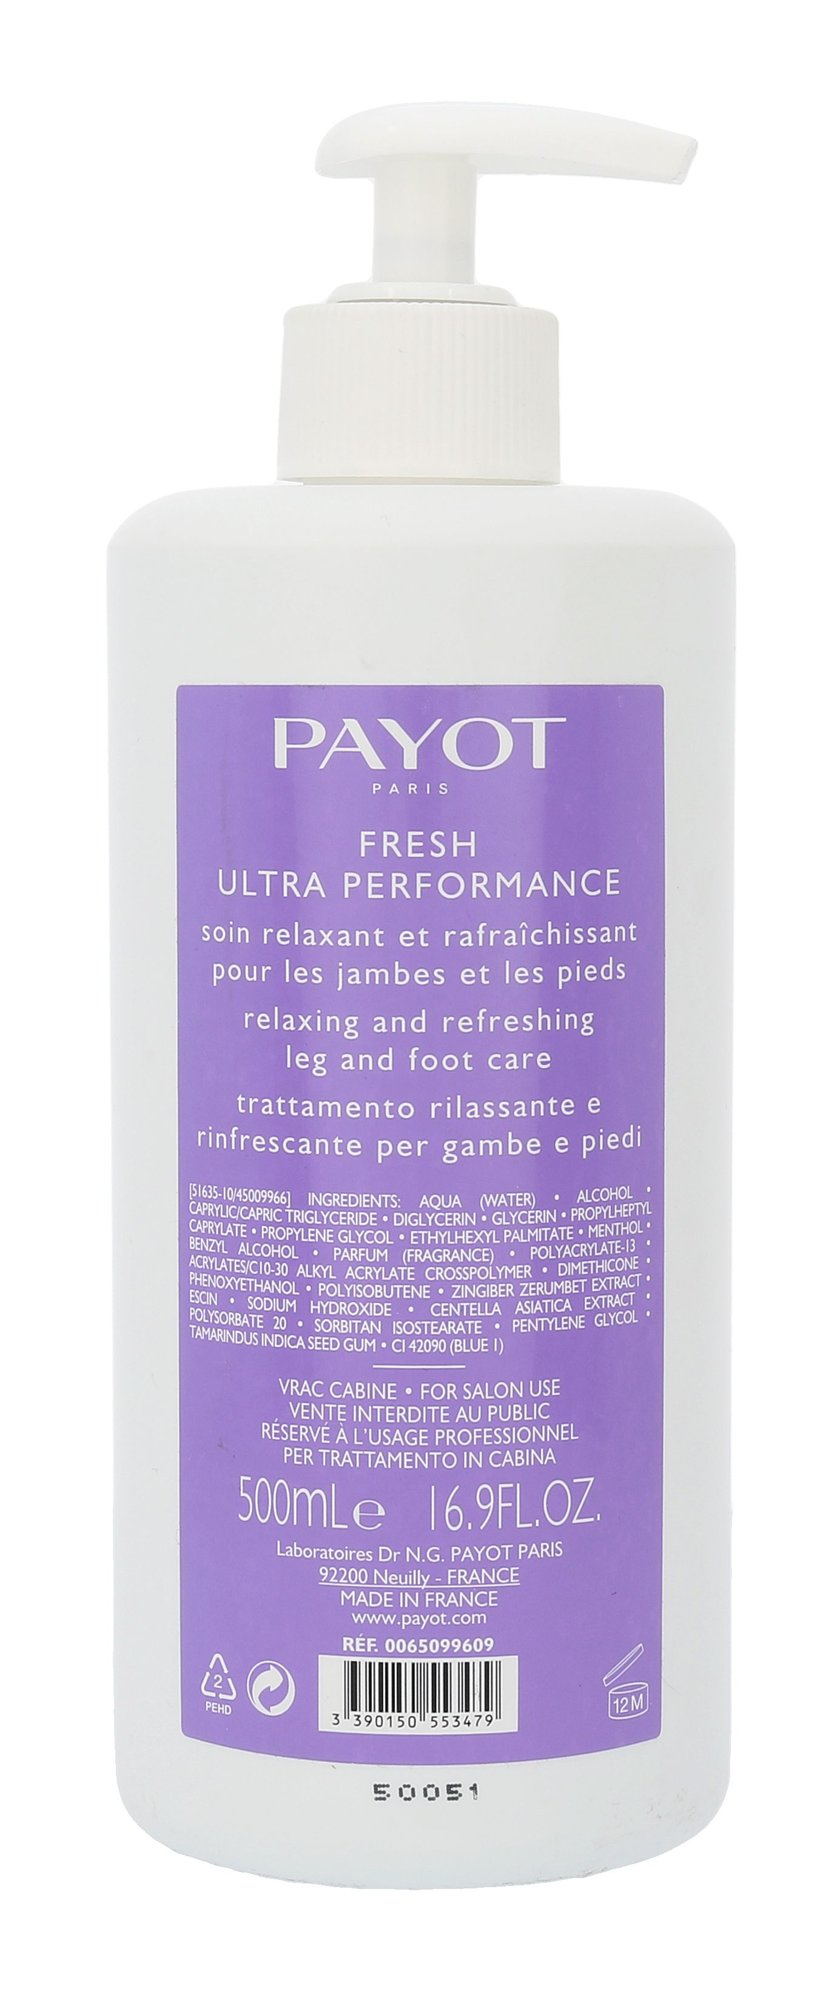 PAYOT Le Corps Cosmetic 500ml